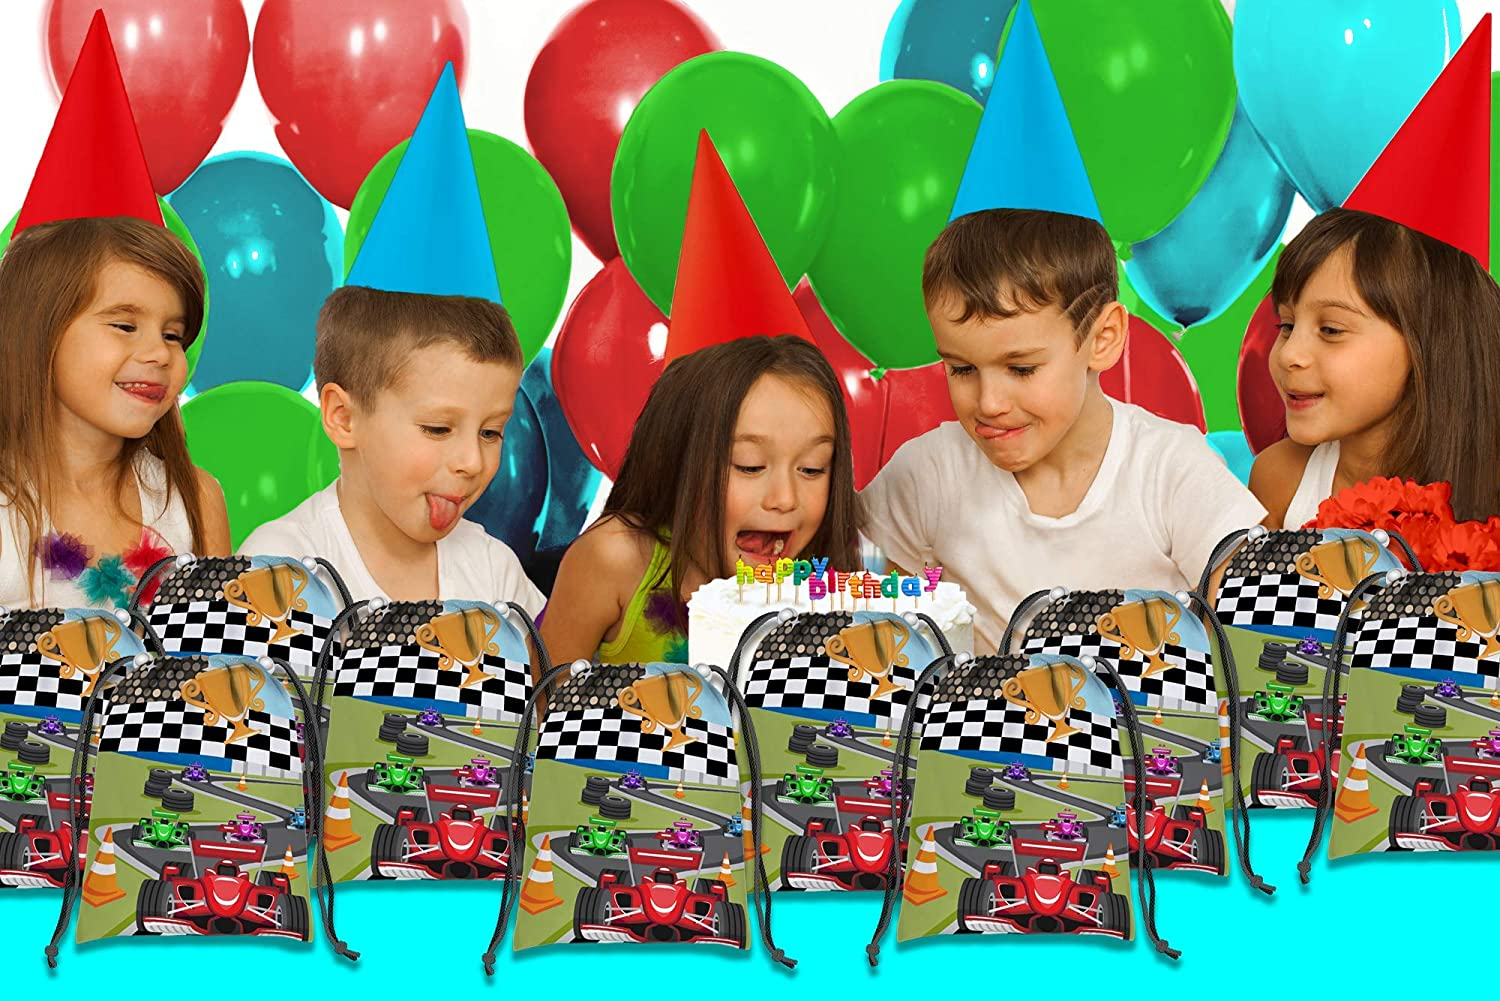 Racing Race Car Drawstring Bags Kids Birthday Party Supplies Favor Bags 10 Pack Birthday Galore